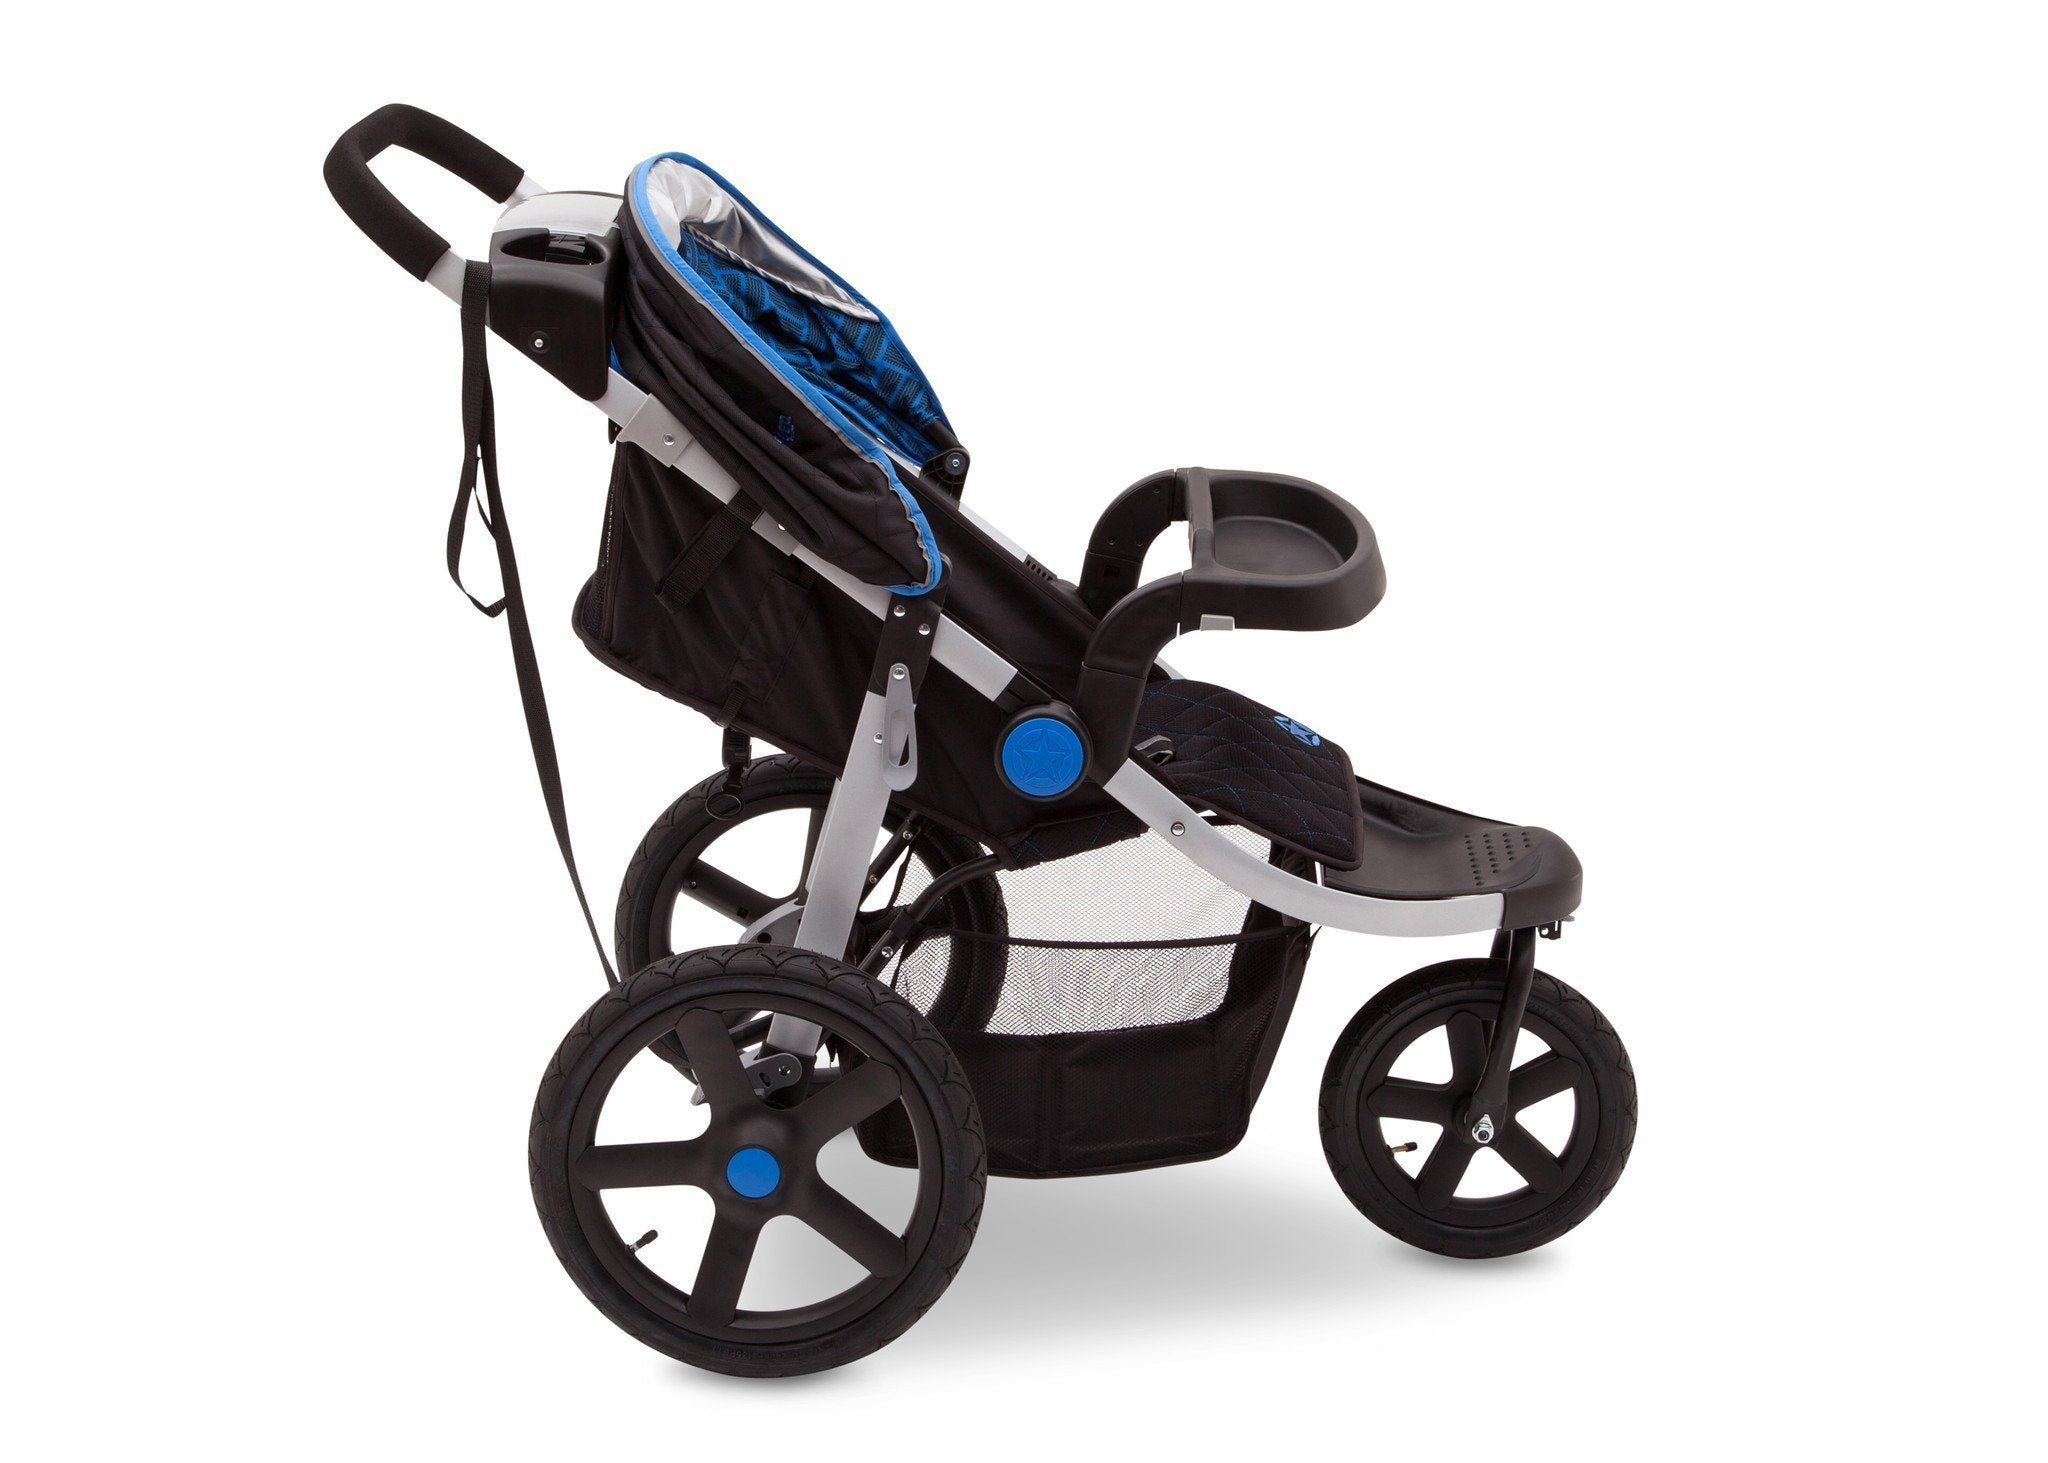 Jeep Adventure All Terrain Jogger Stroller by Delta Children, Tracks (439), with multi-position reclining seat